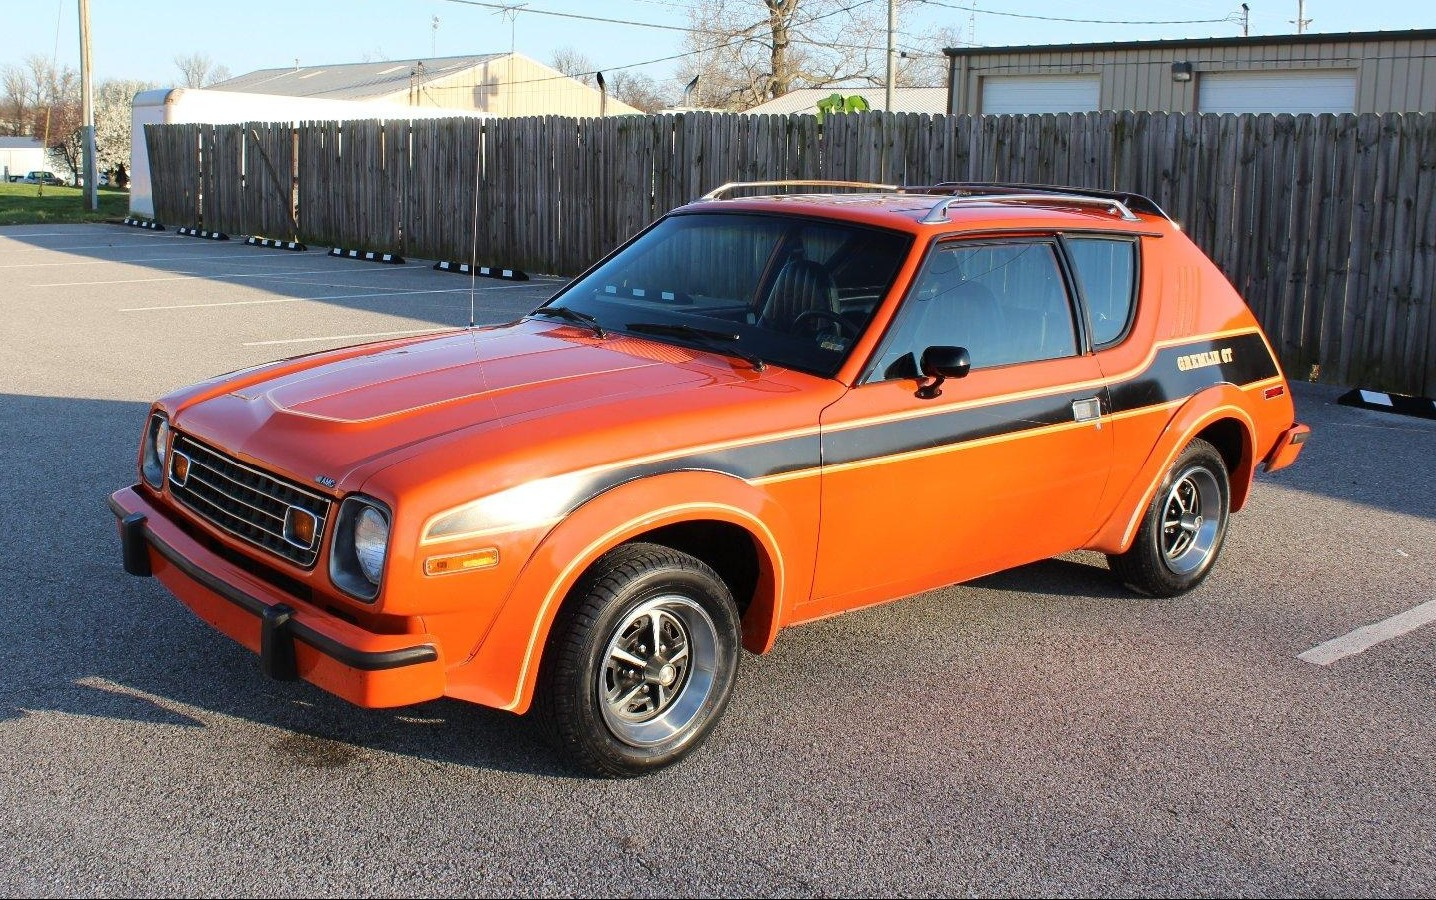 Car Auction Usa >> 15 Years In A Barn: Dad's 1978 Gremlin GT